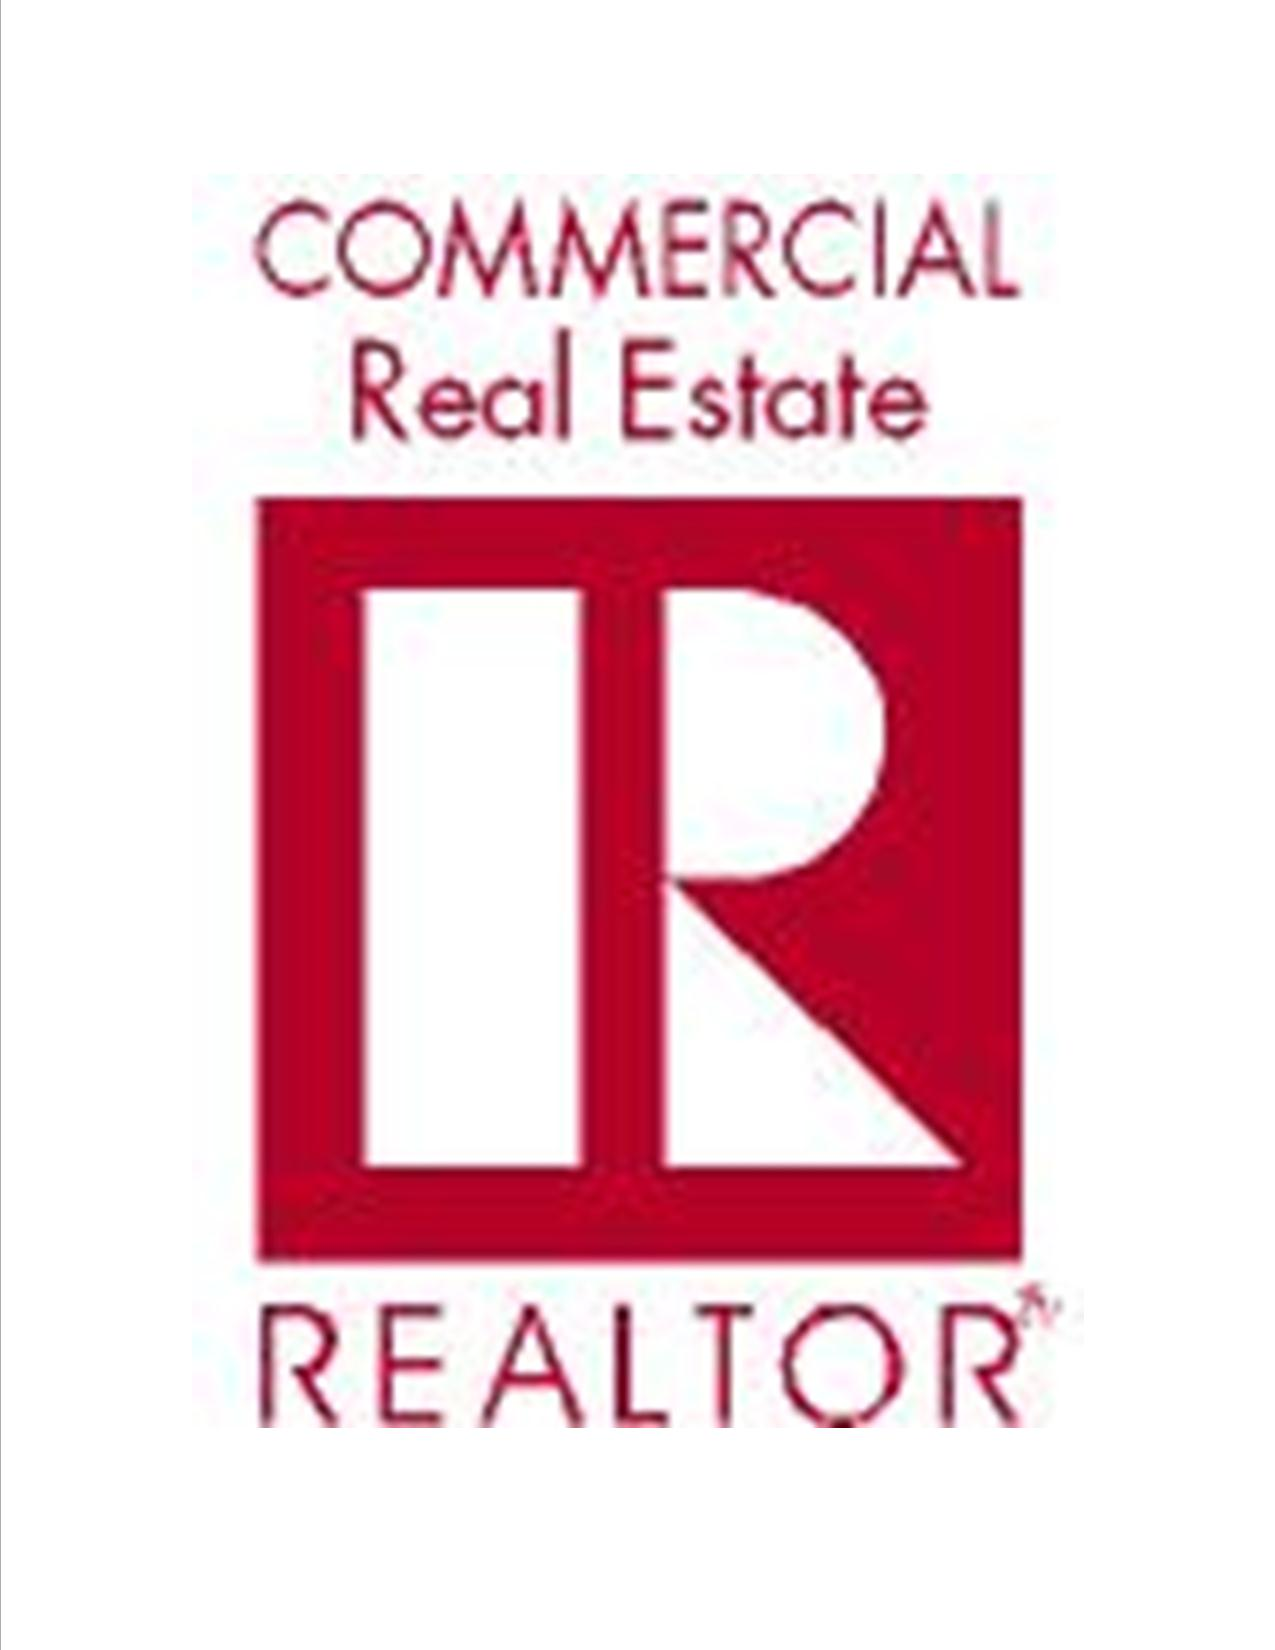 Tampa Commercial Real Estate For Sale Or Lease Tampa Commercial Real Estate